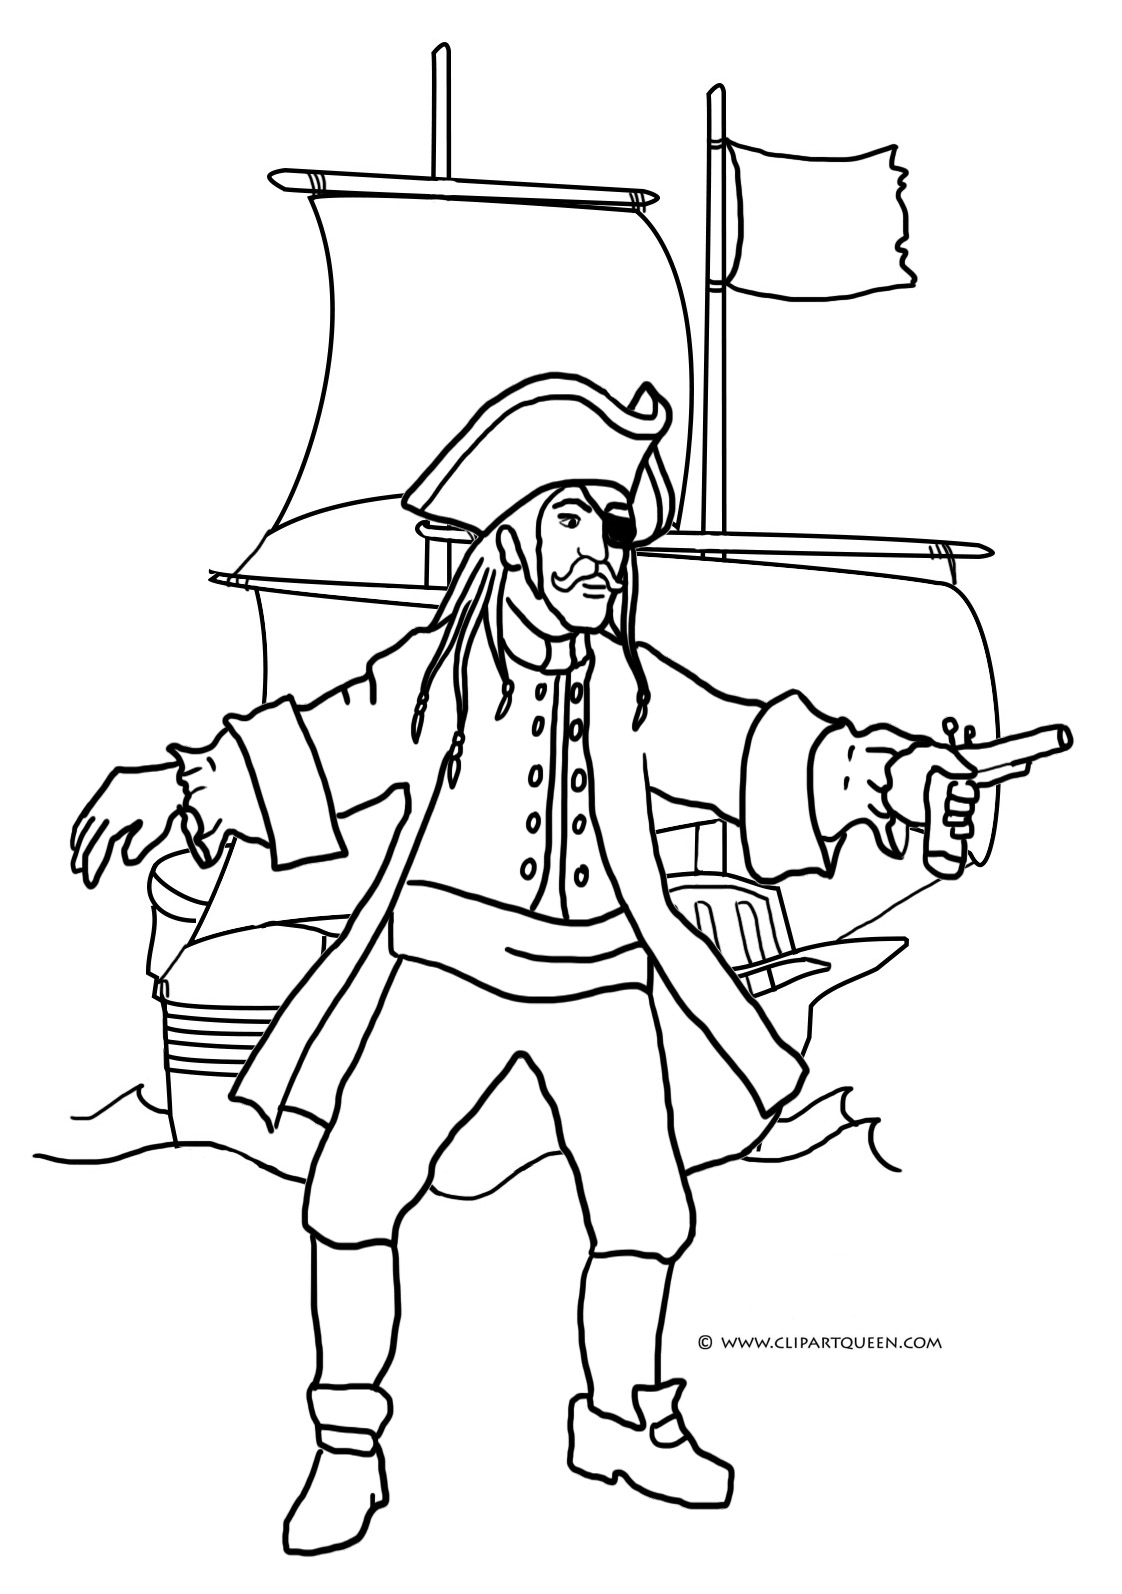 pirate coloring pages cartoon - photo#10